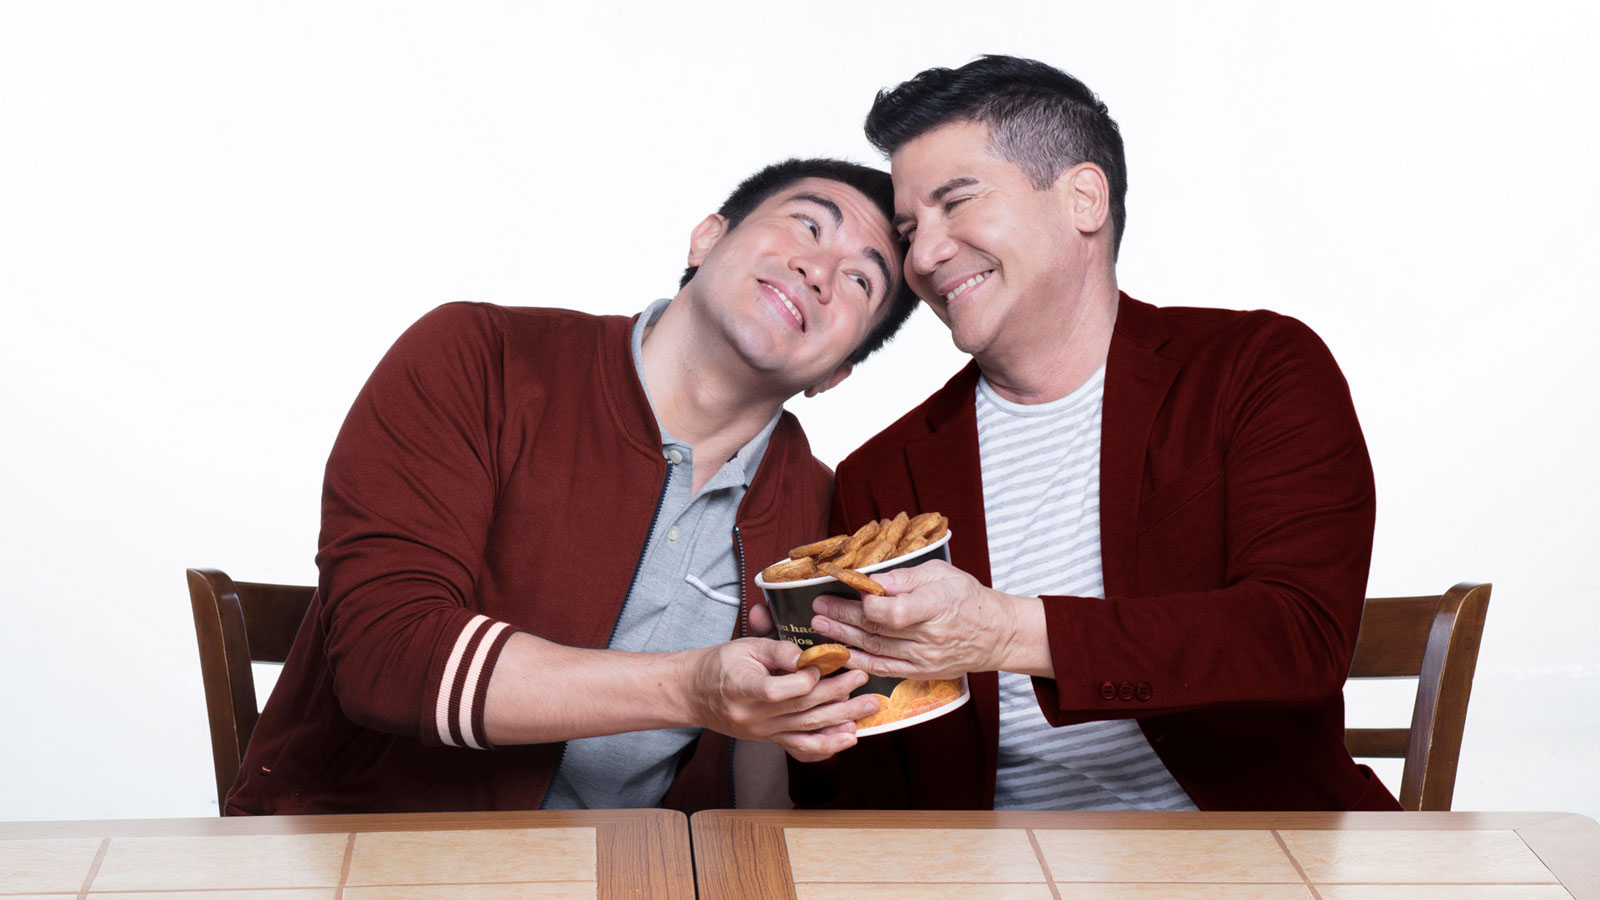 Luis and Edu Manzano for Shakey's #lucky2018 meal deal